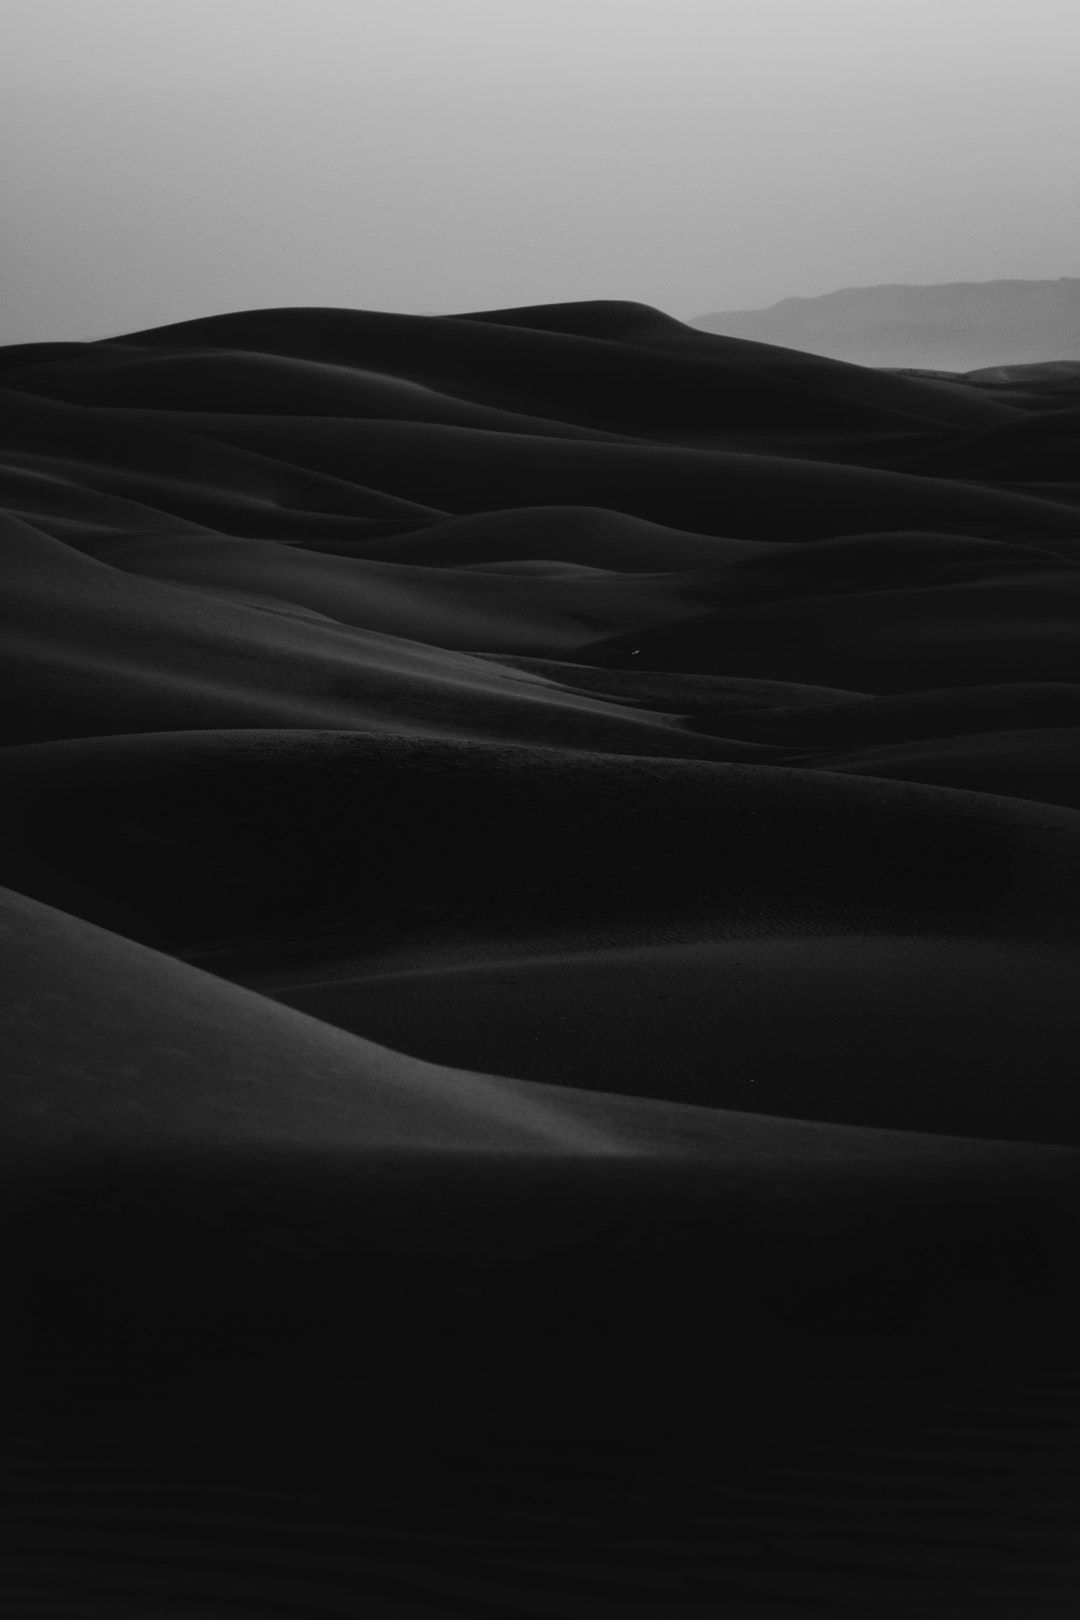 Download This Free Hd Photo Of Landscape Hill Sand And Desert In Oceano United States By Jeremy Bishop Black And White Wallpaper Black Picture Black Sand